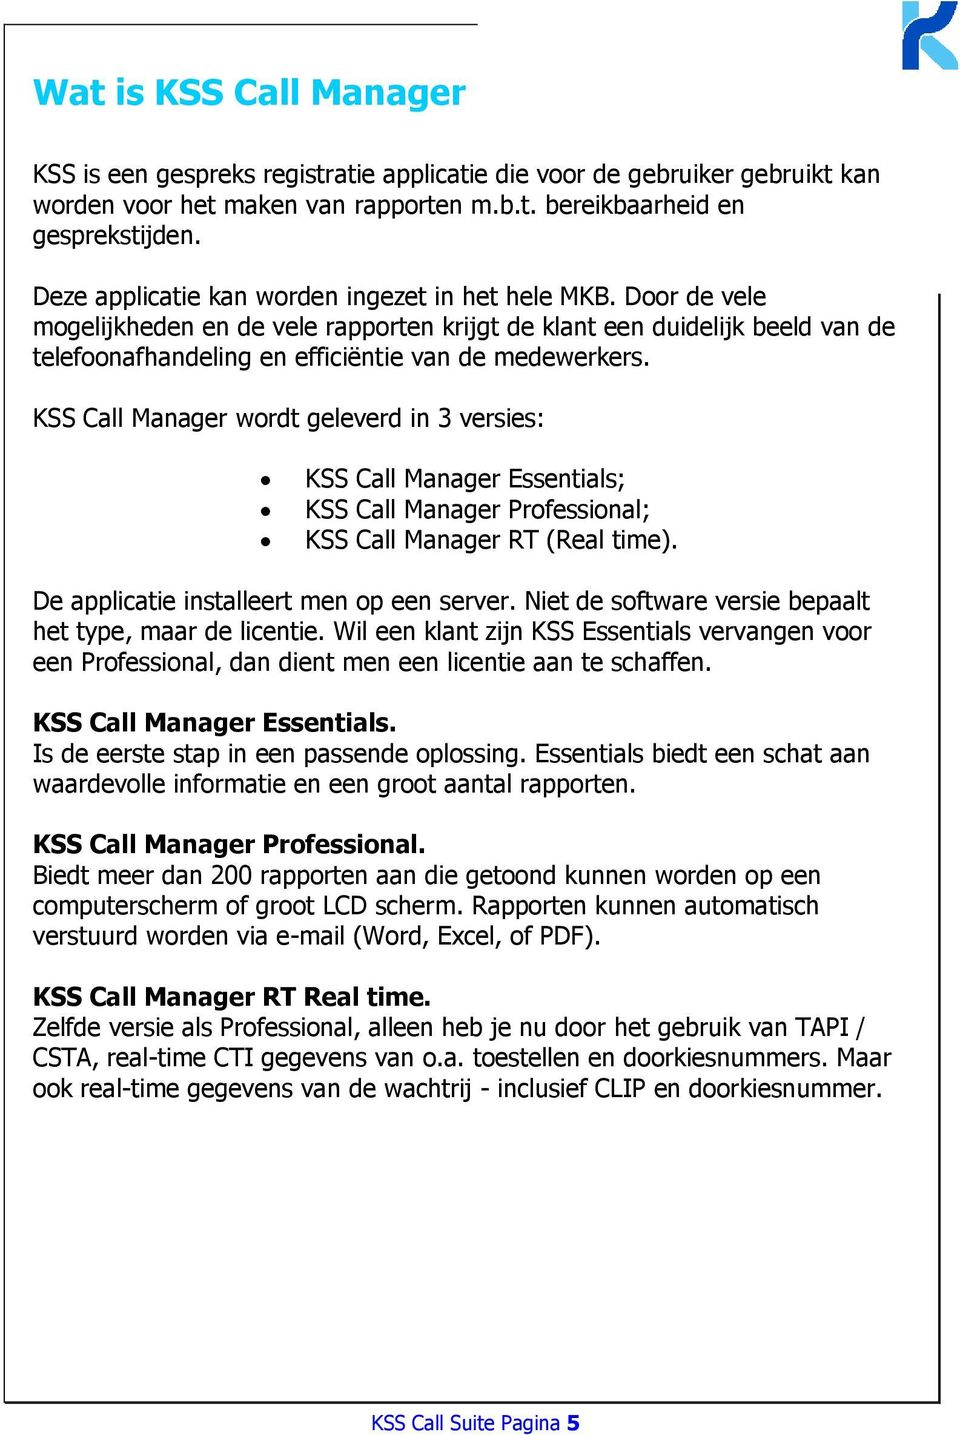 KSS Call Manager wordt geleverd in 3 versies: KSS Call Manager Essentials; KSS Call Manager Professional; KSS Call Manager RT (Real time). De applicatie installeert men op een server.